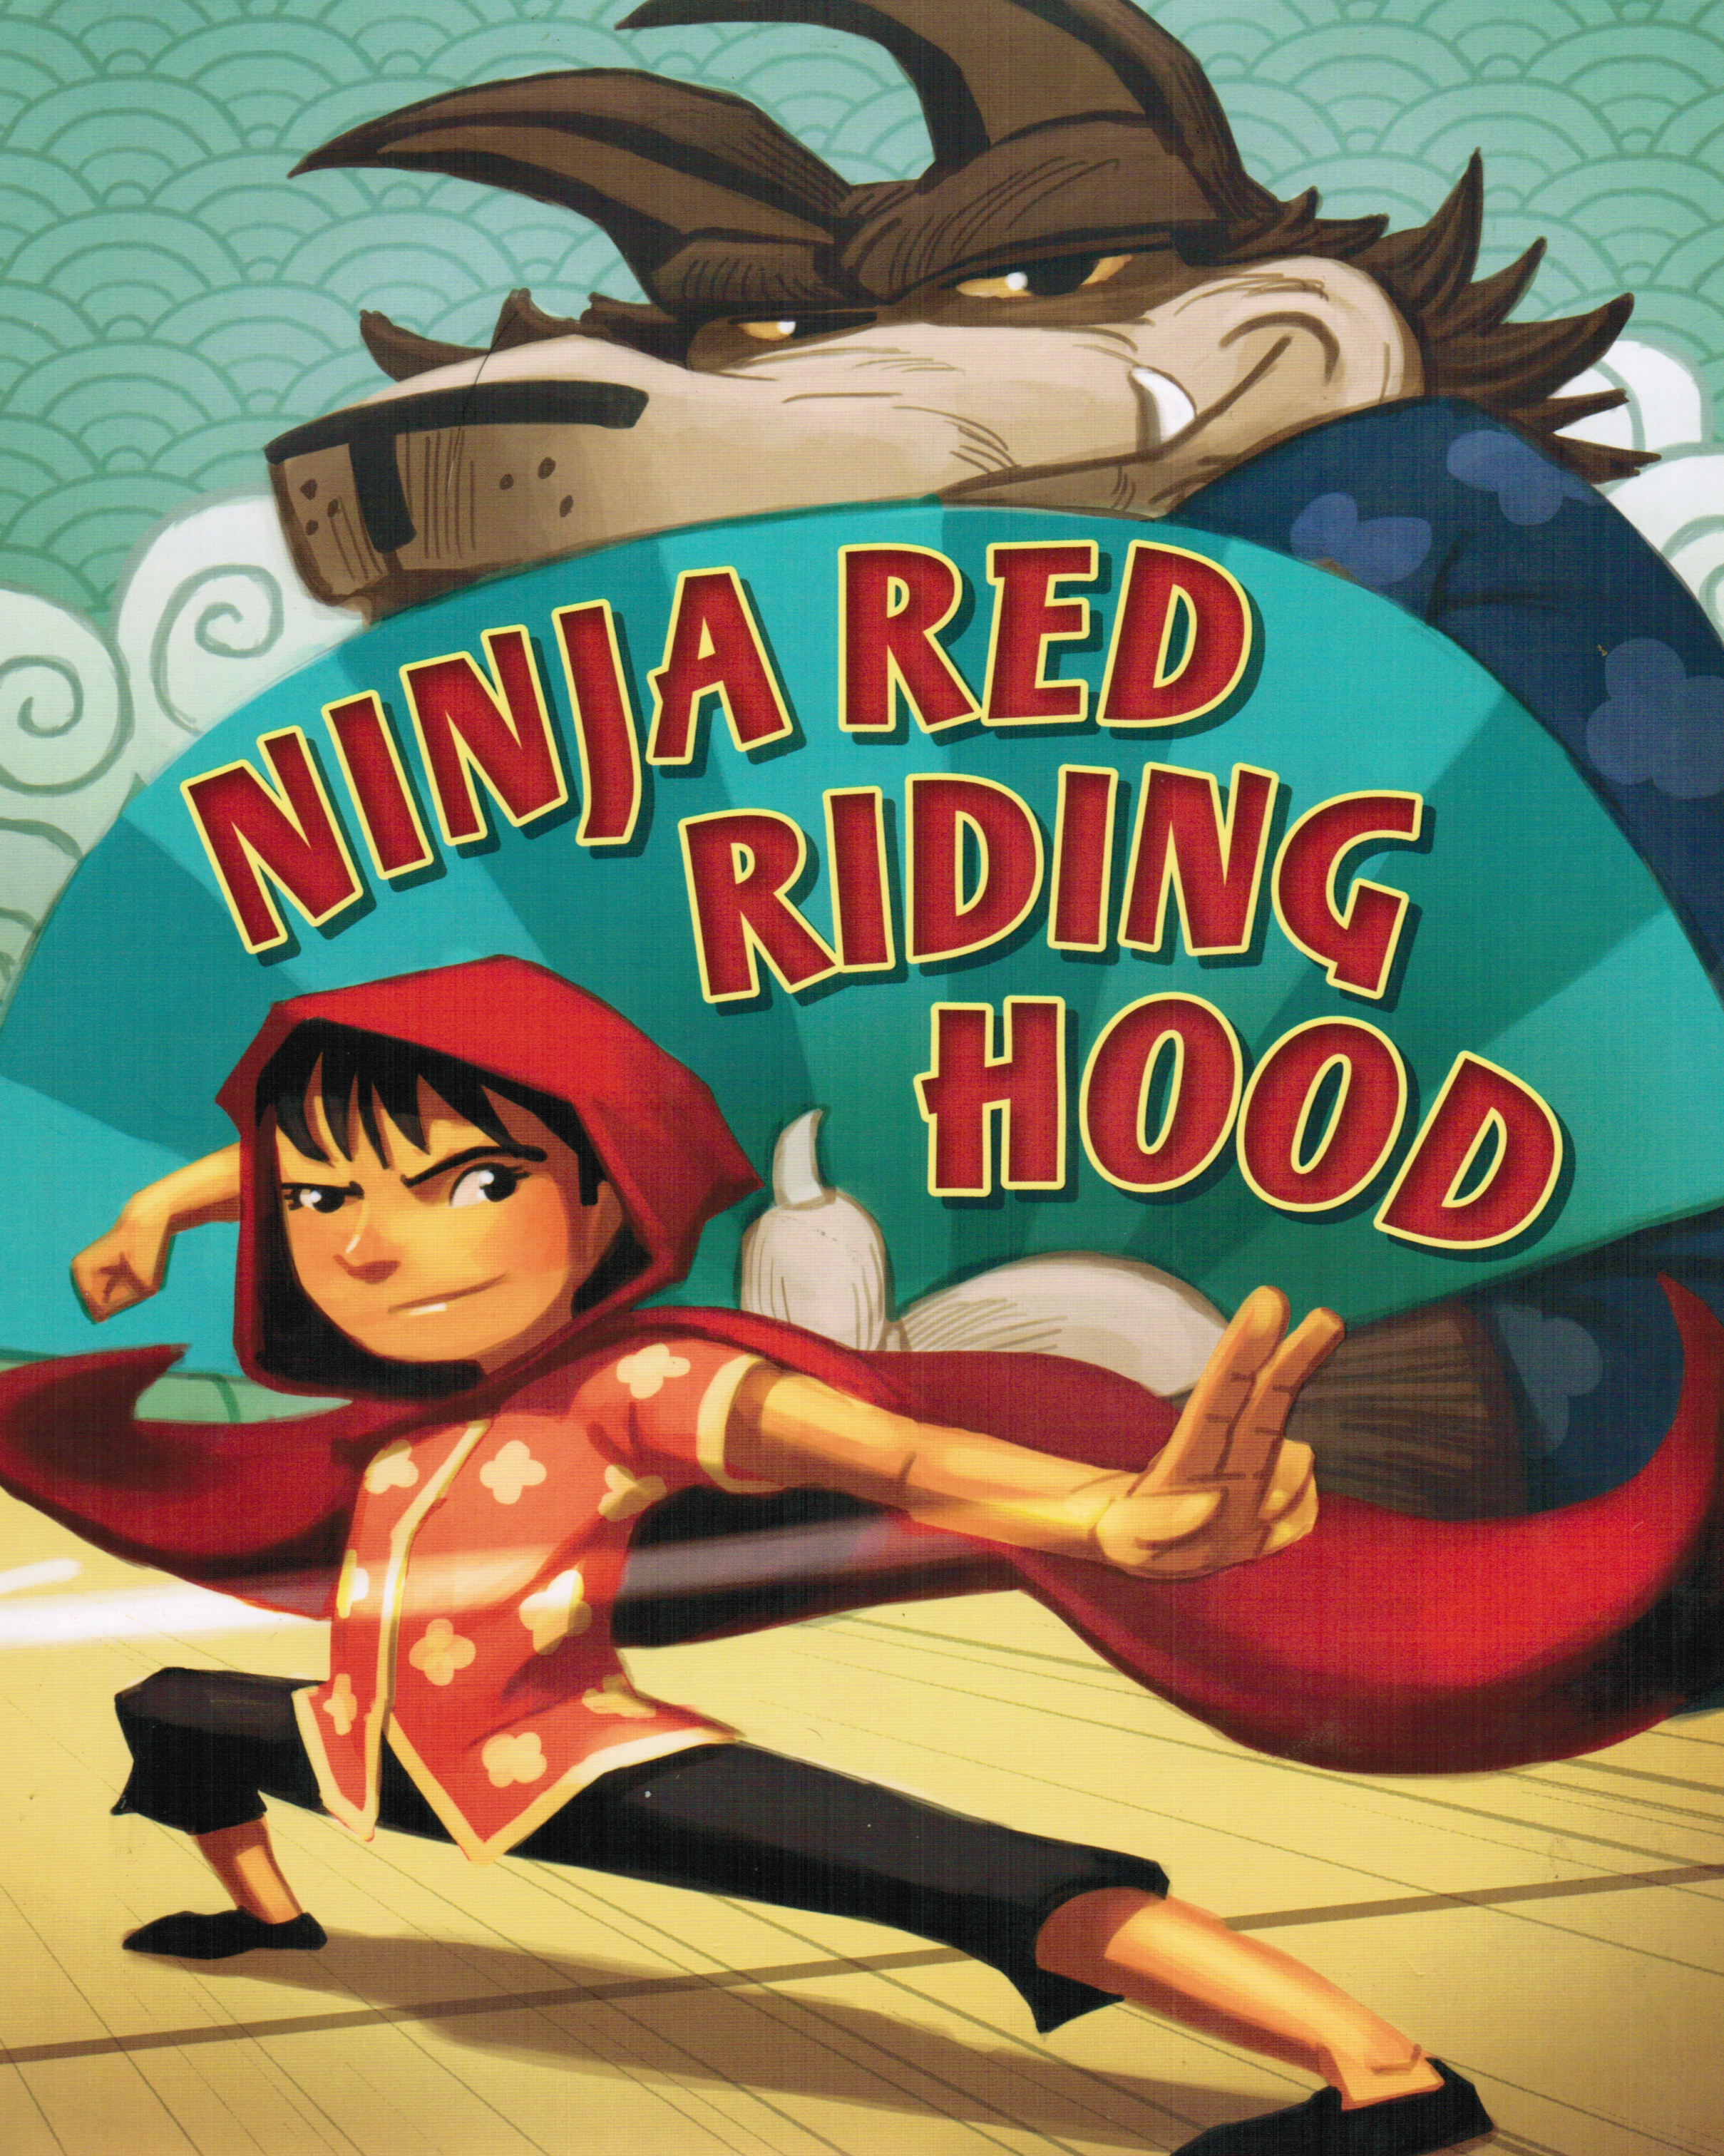 Image for Ninja Red Riding Hood